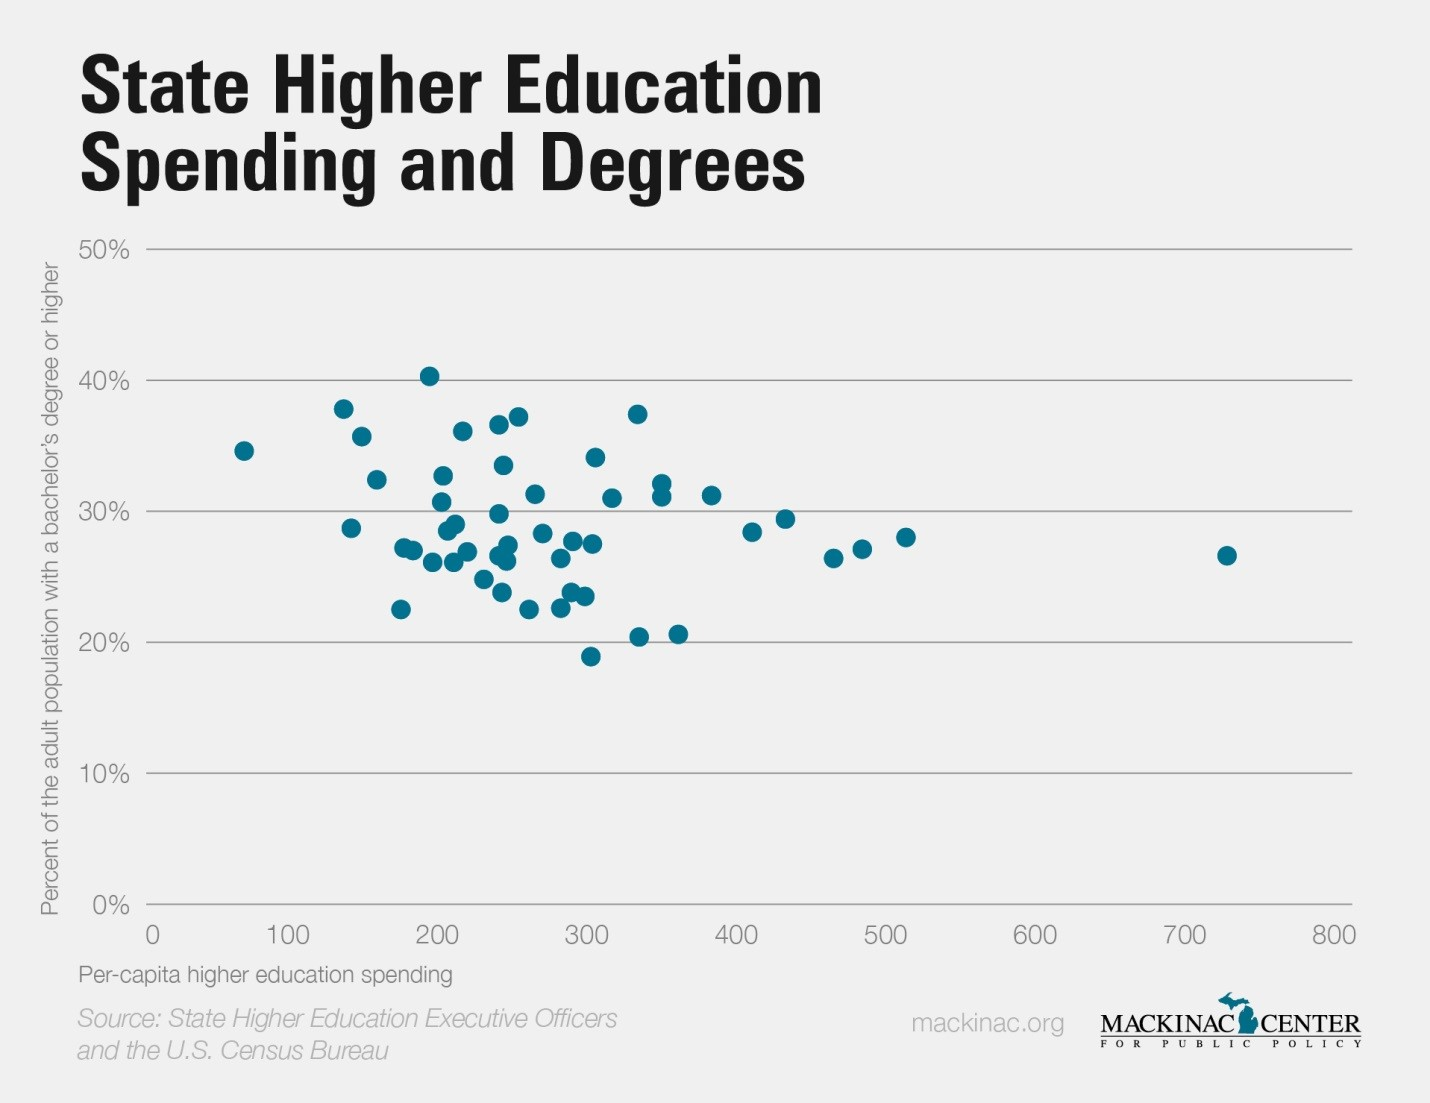 State Higher Education Spending and Degrees